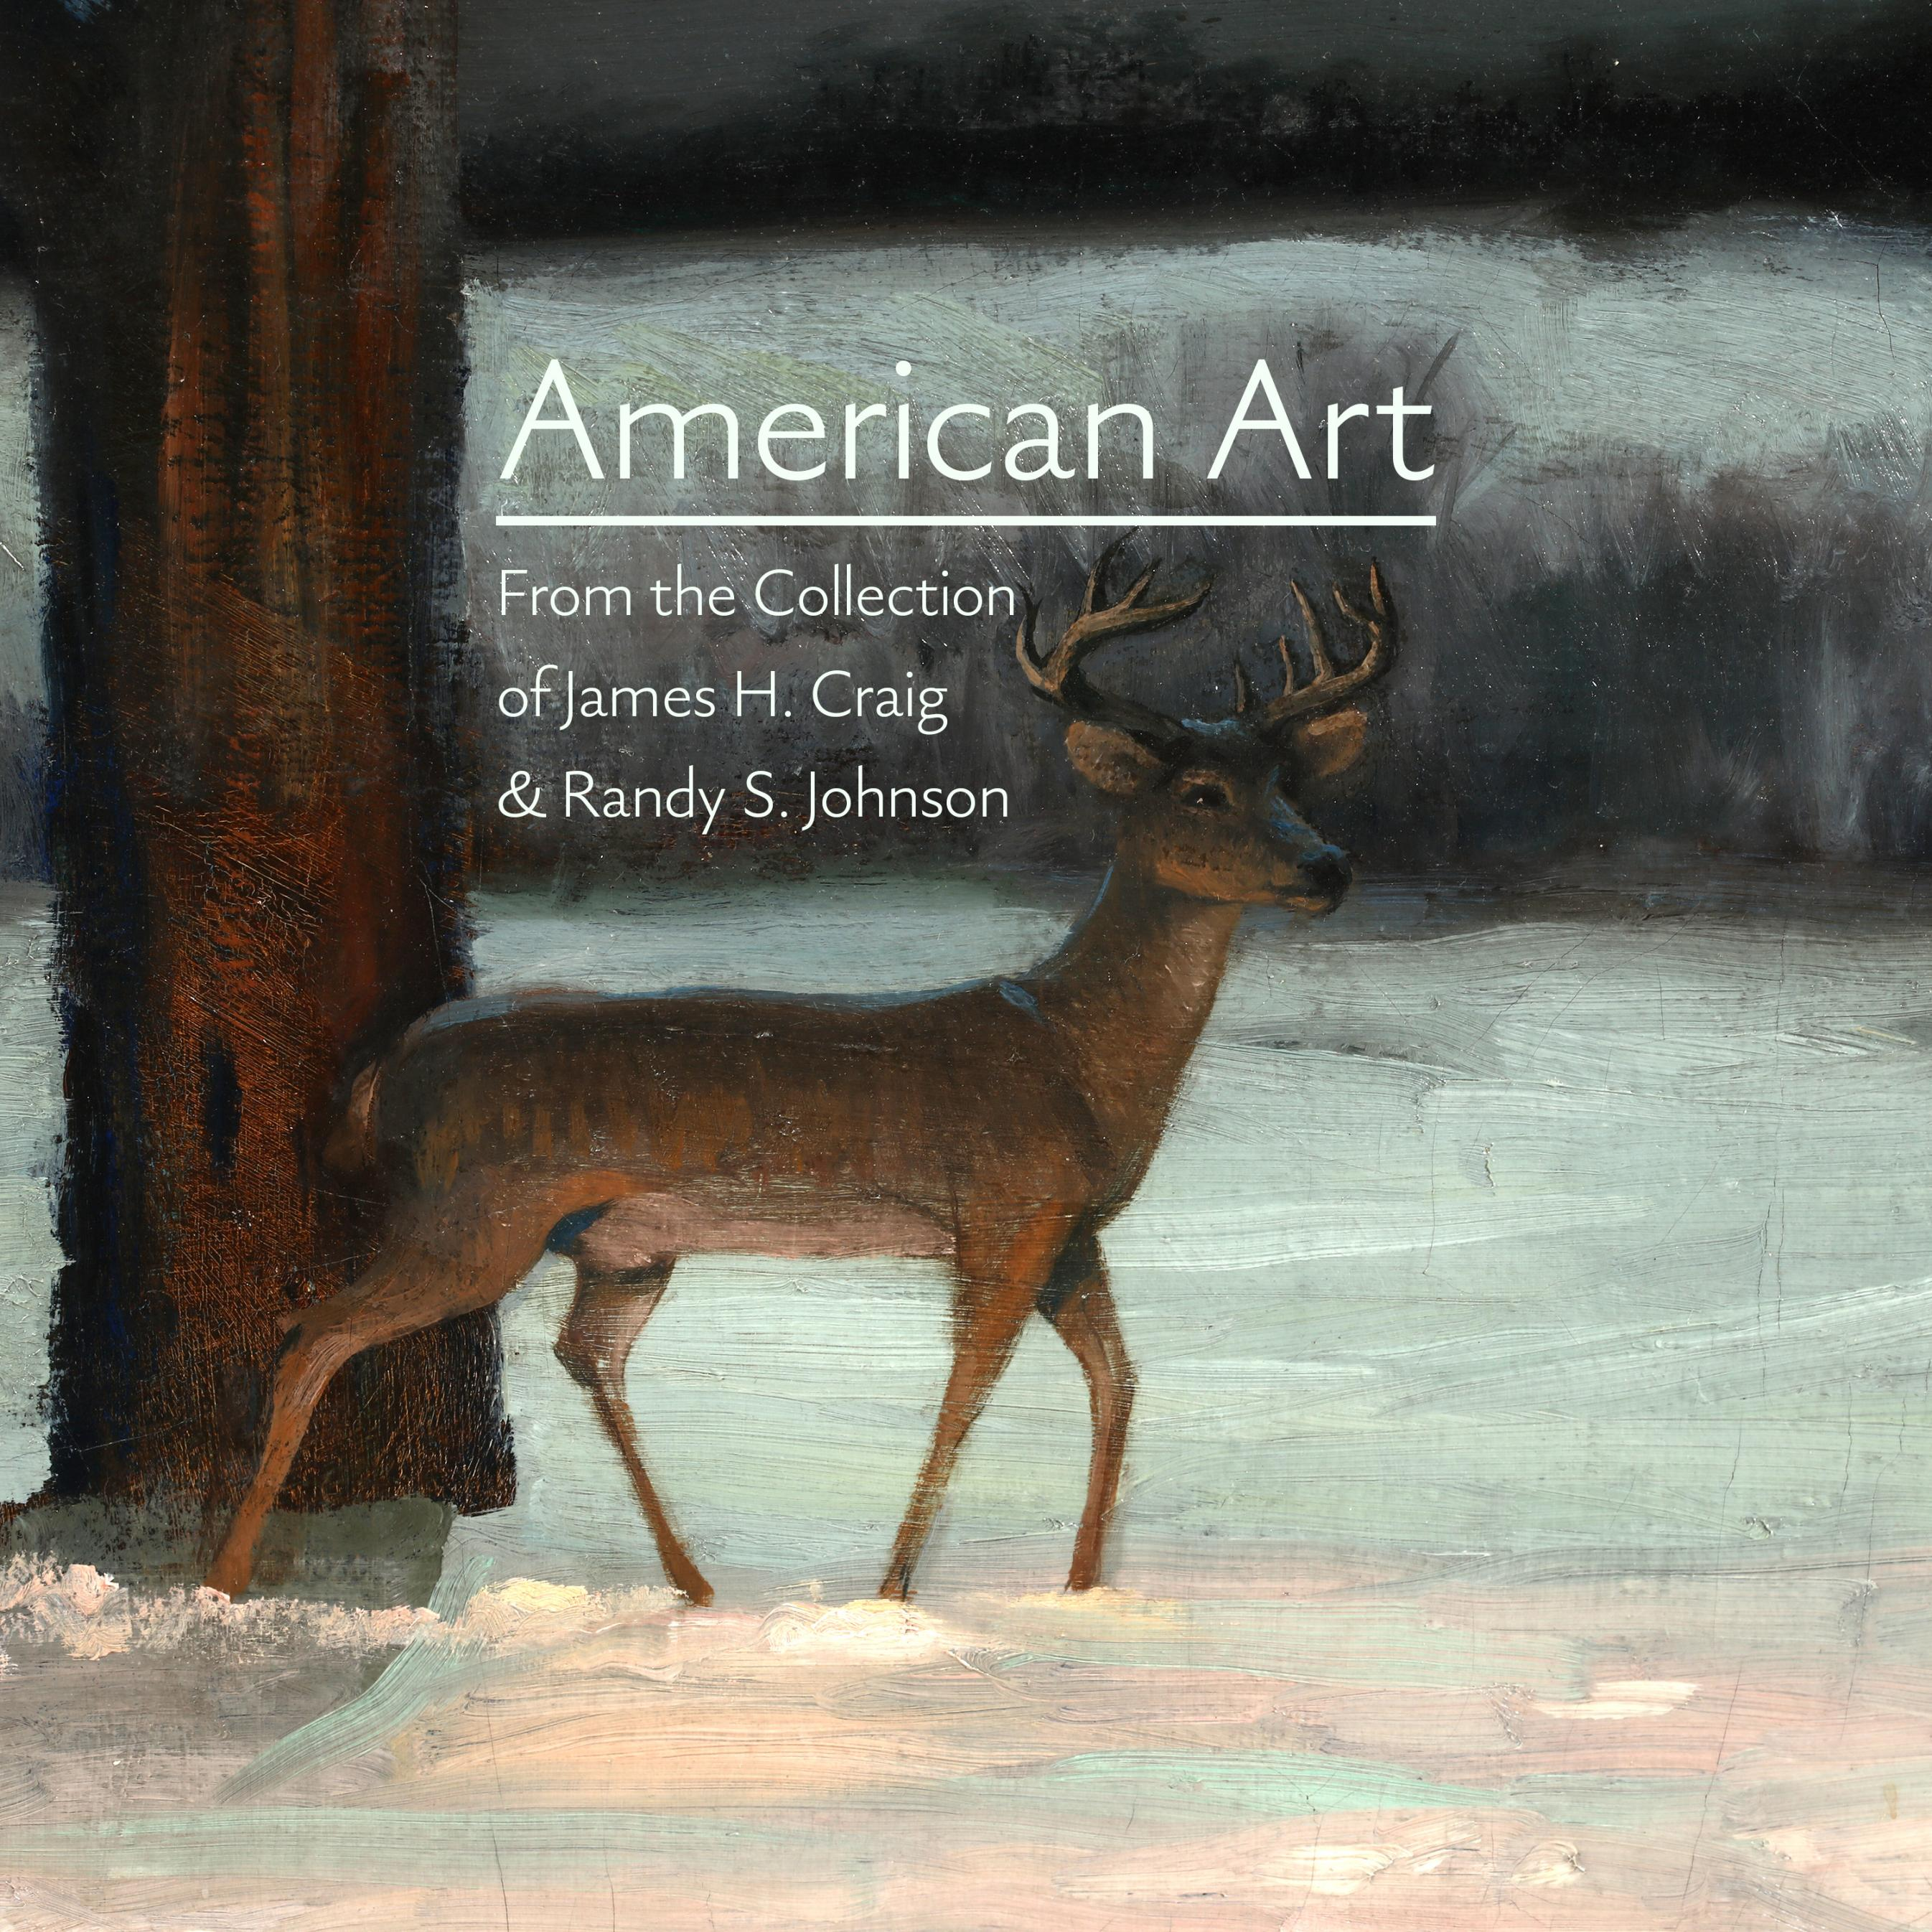 american-art-from-the-collection-of-james-h-craig-and-randy-s-johnson